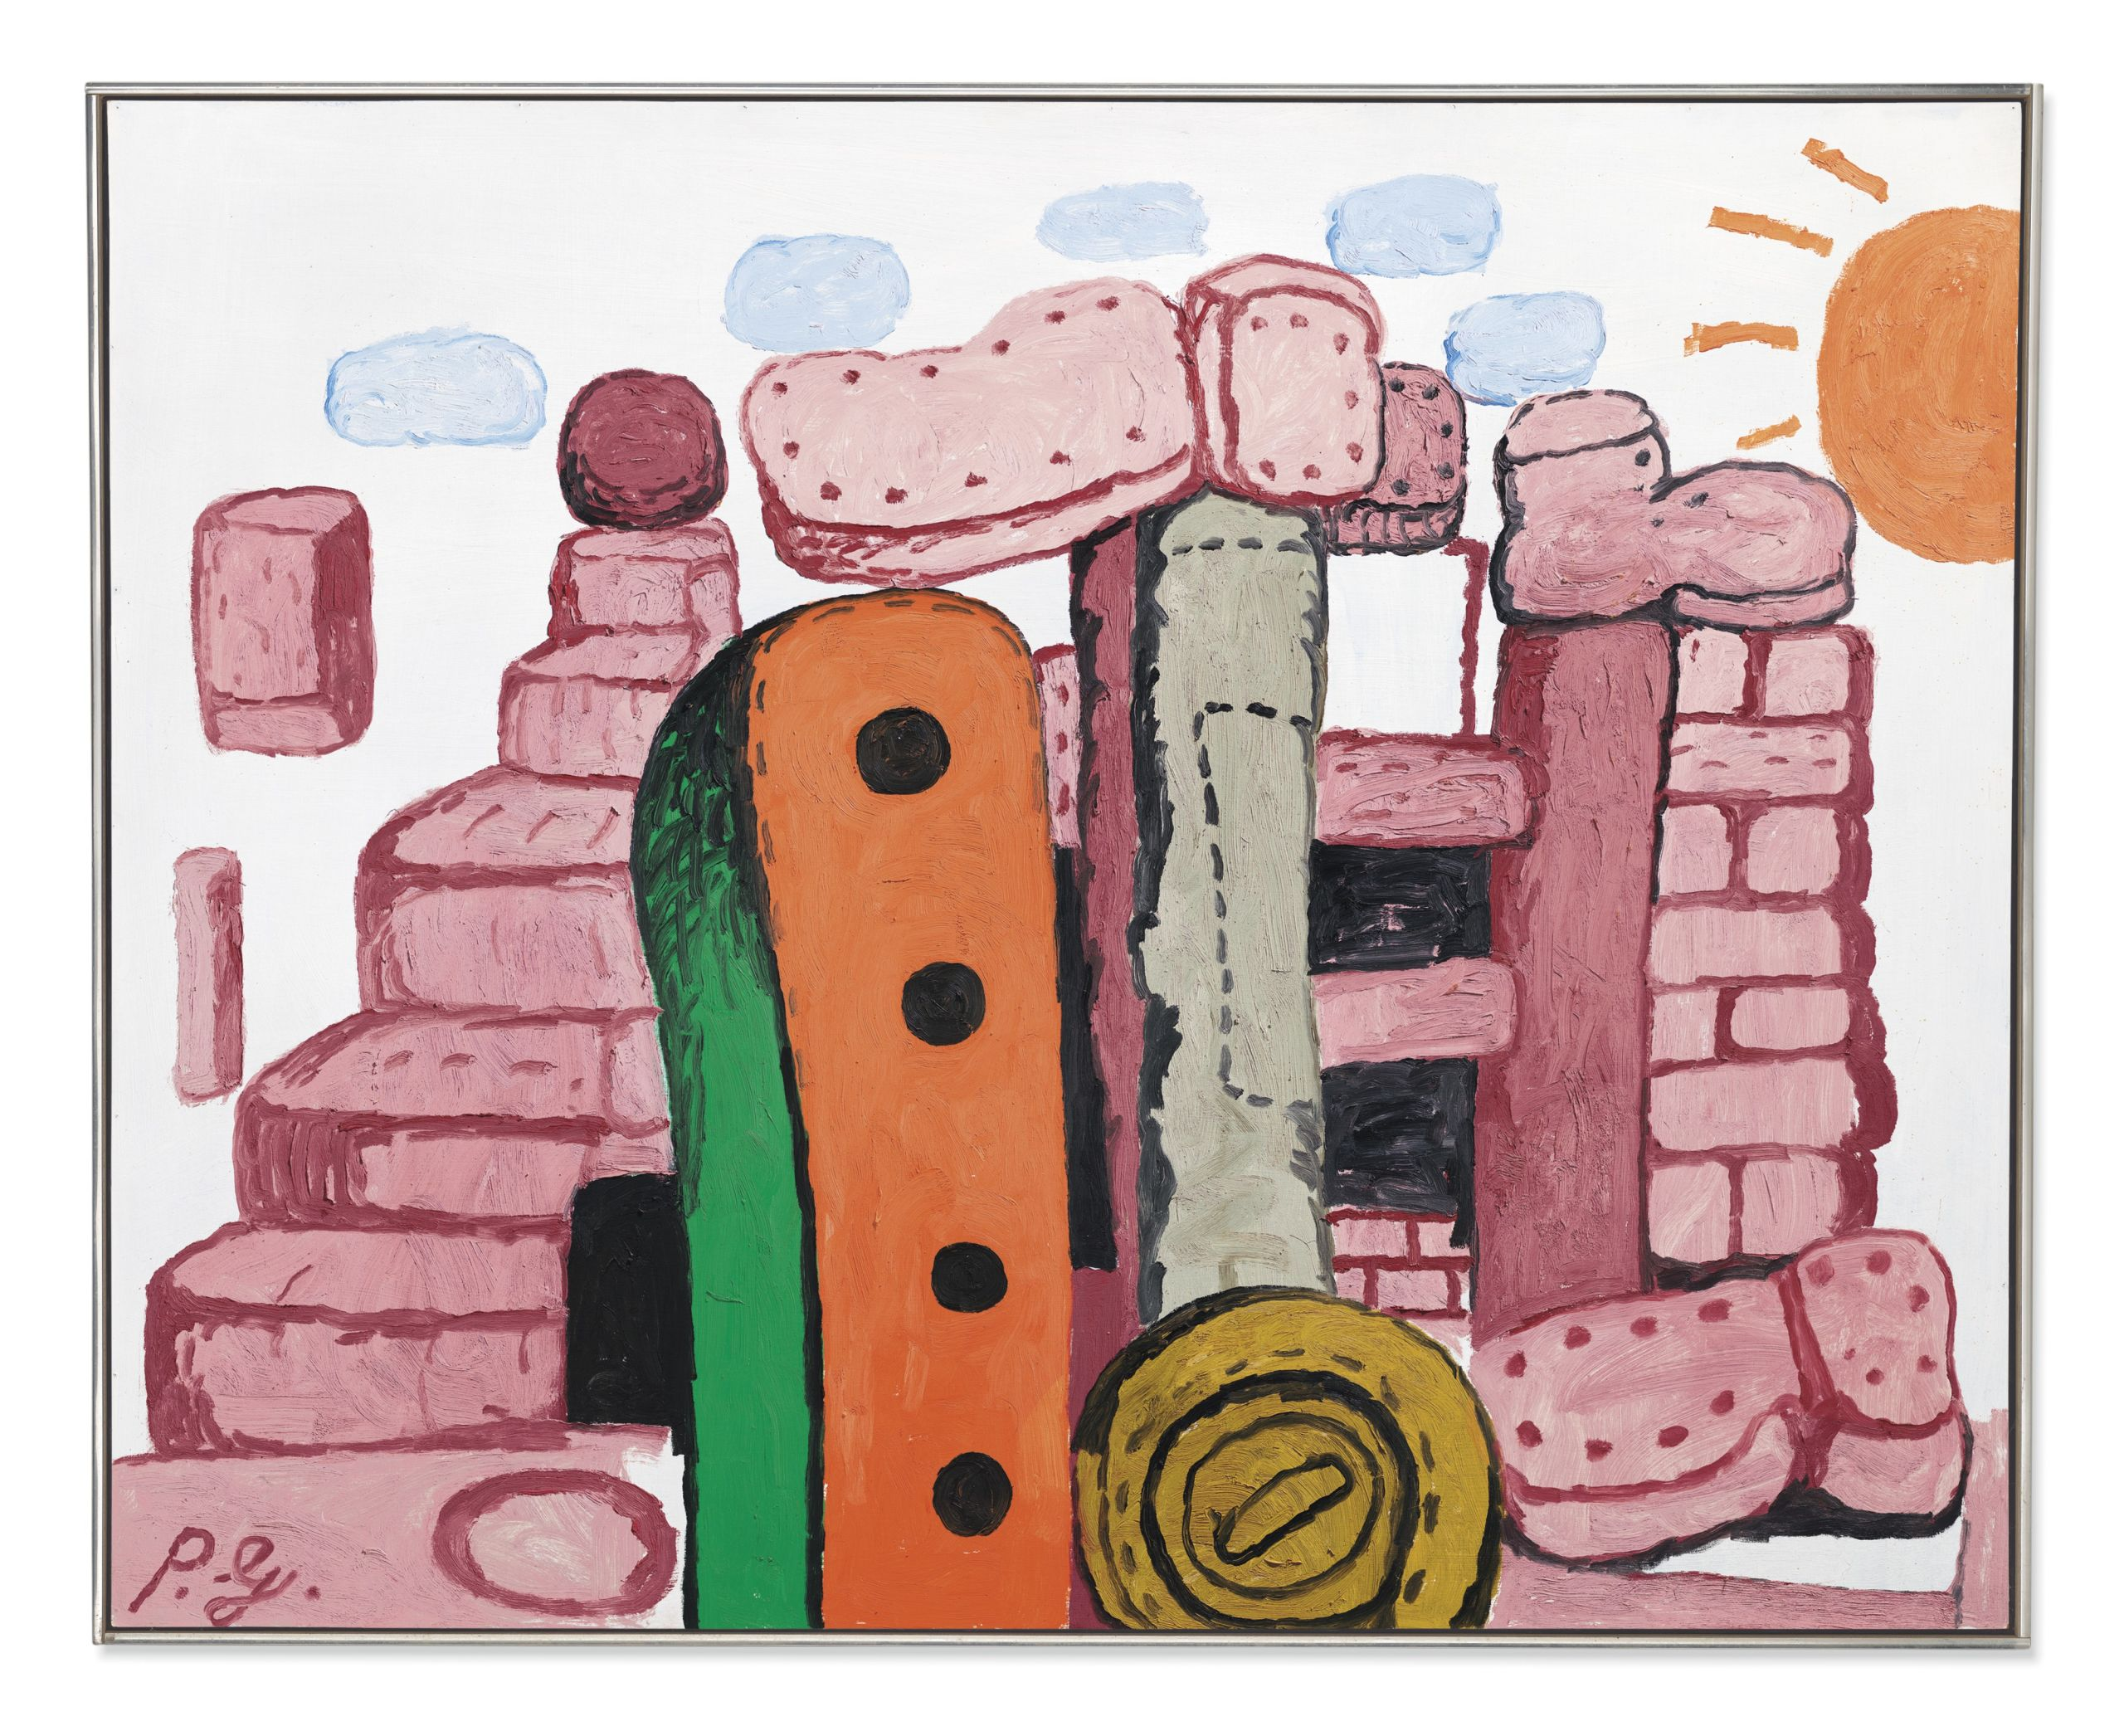 Philip Guston, Language 1, 1973. Oil on panel. 48 x 60 in (122 x 152 cm). Estimate: £1,500,000-2,000,000. Offered in The Jeremy Lancaster Collection on 1 October at Christie's in London